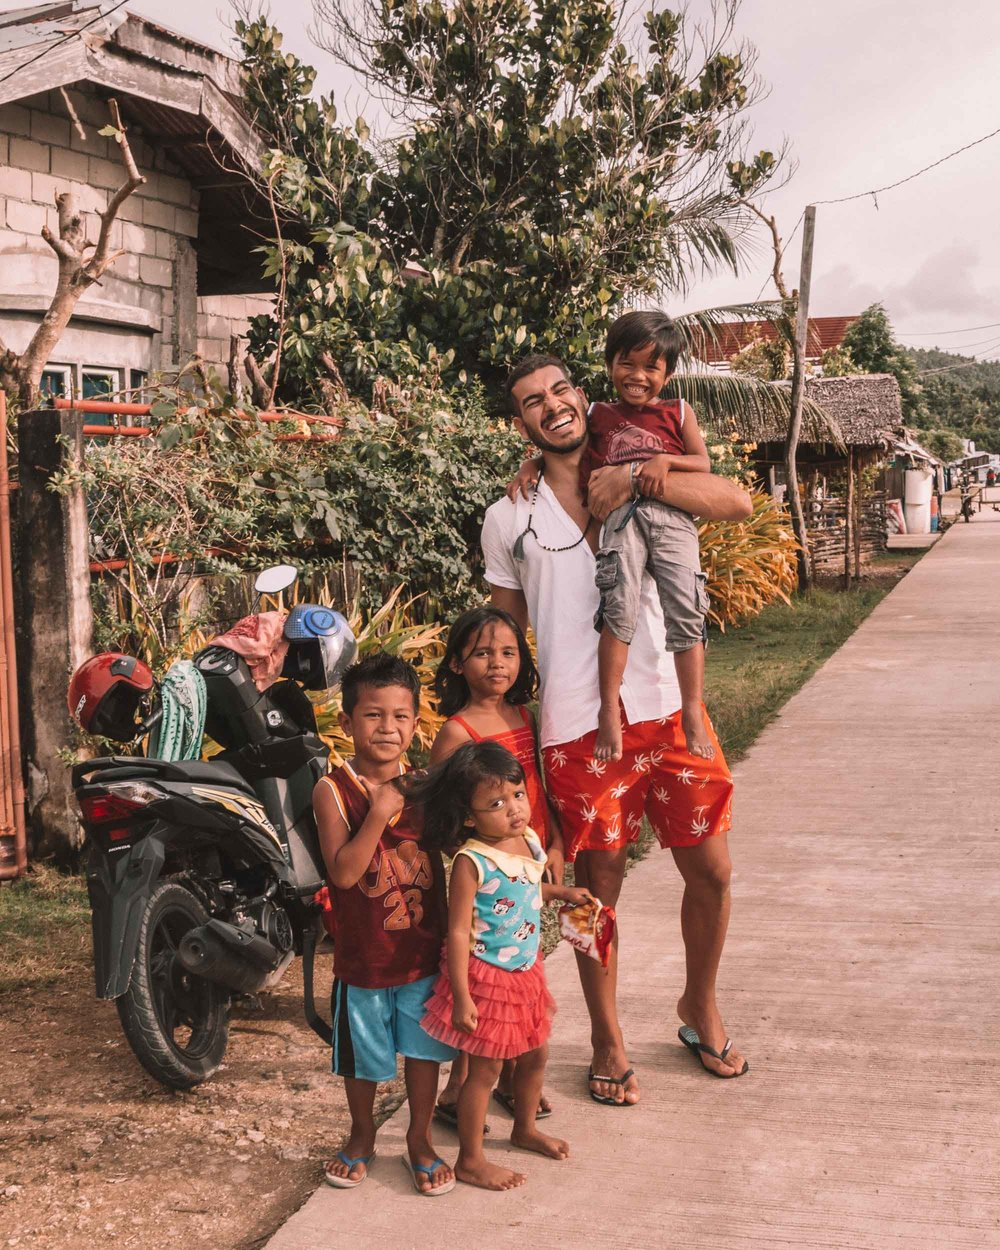 Siargao living the ultimate island life Philippines tropical destination palm tree beach beautiful places travel guide local children playing